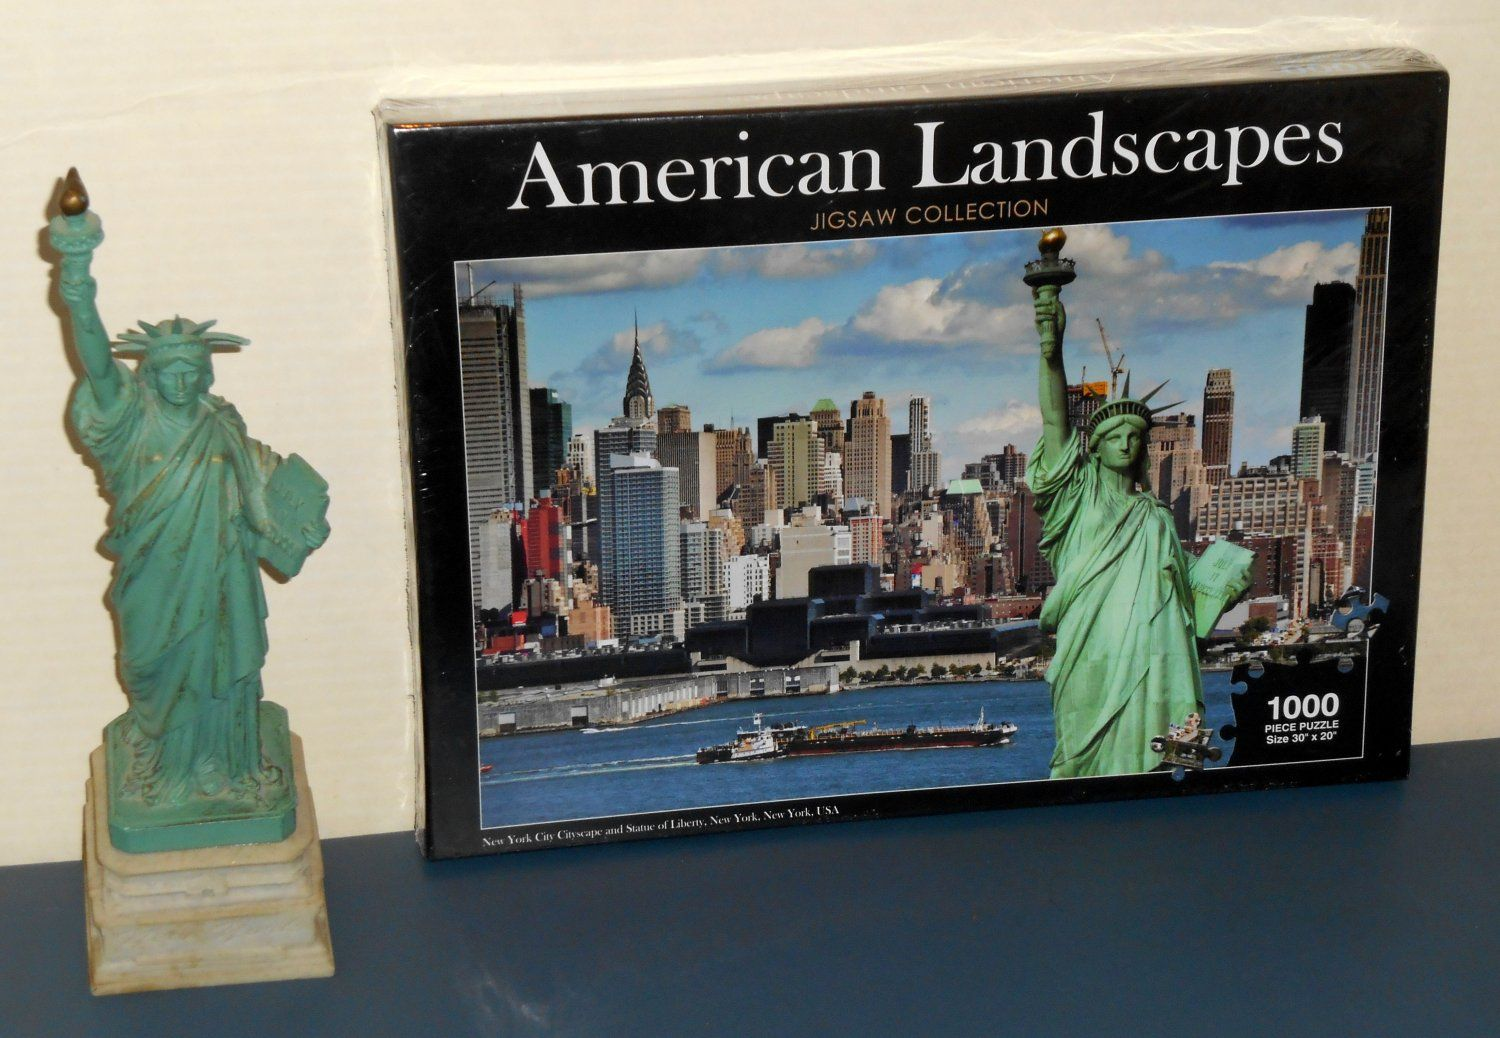 For sale statue of liberty lot mms world ms colbar art for sale statue of liberty lot mms world ms colbar art figurine new york city biocorpaavc